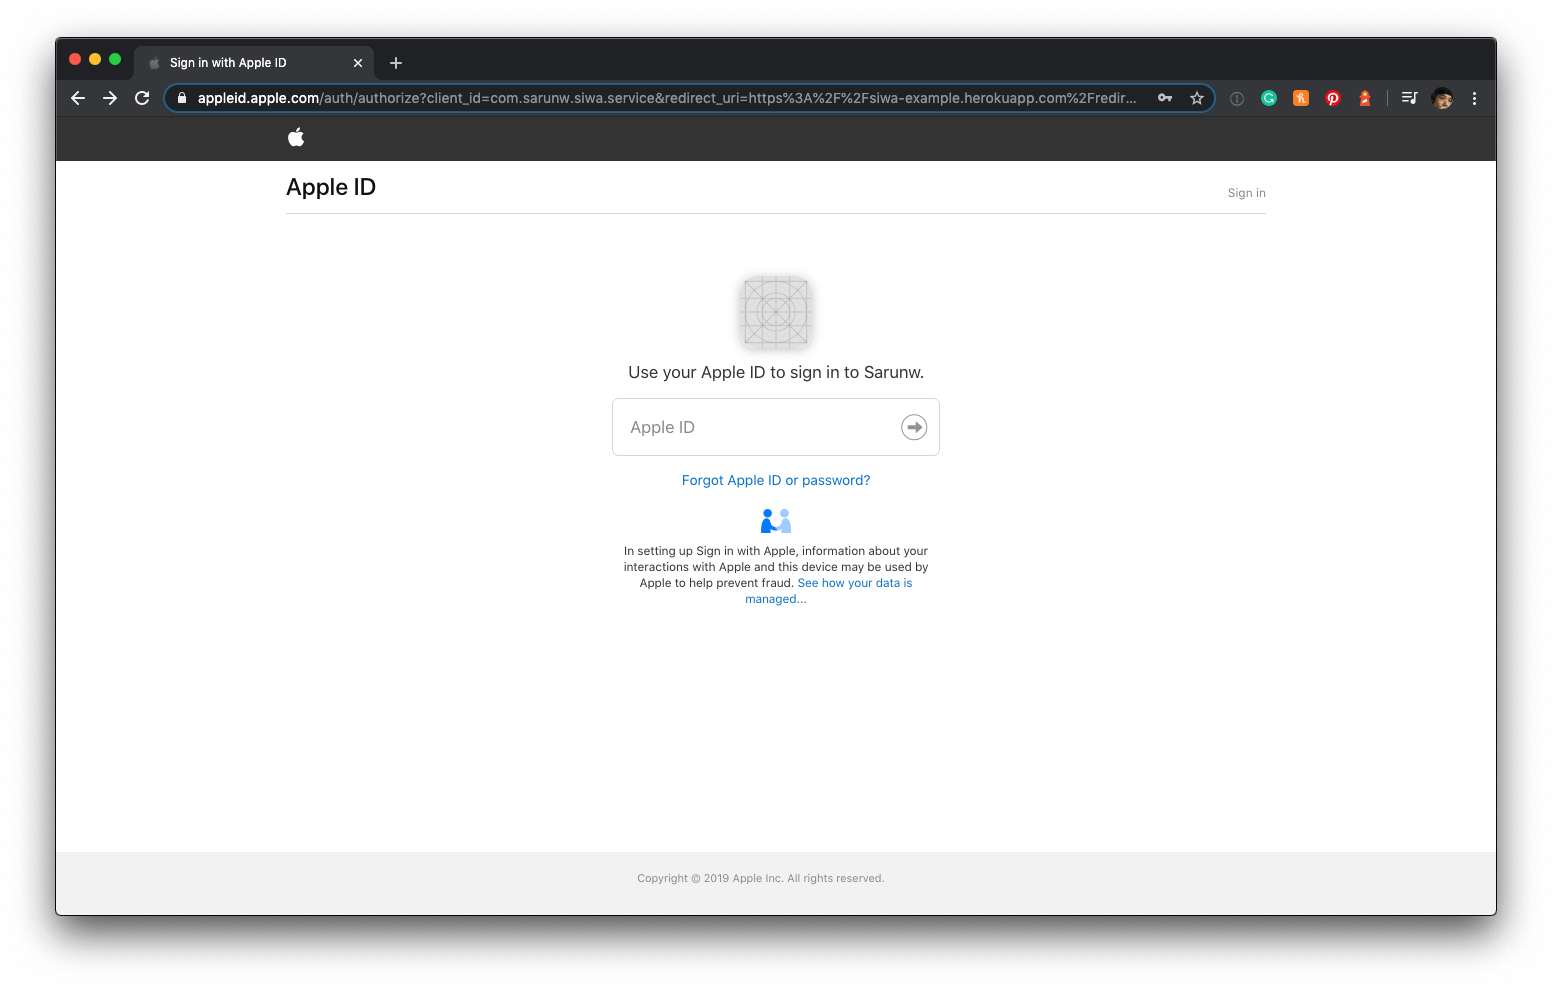 Sign in with Apple - First screen